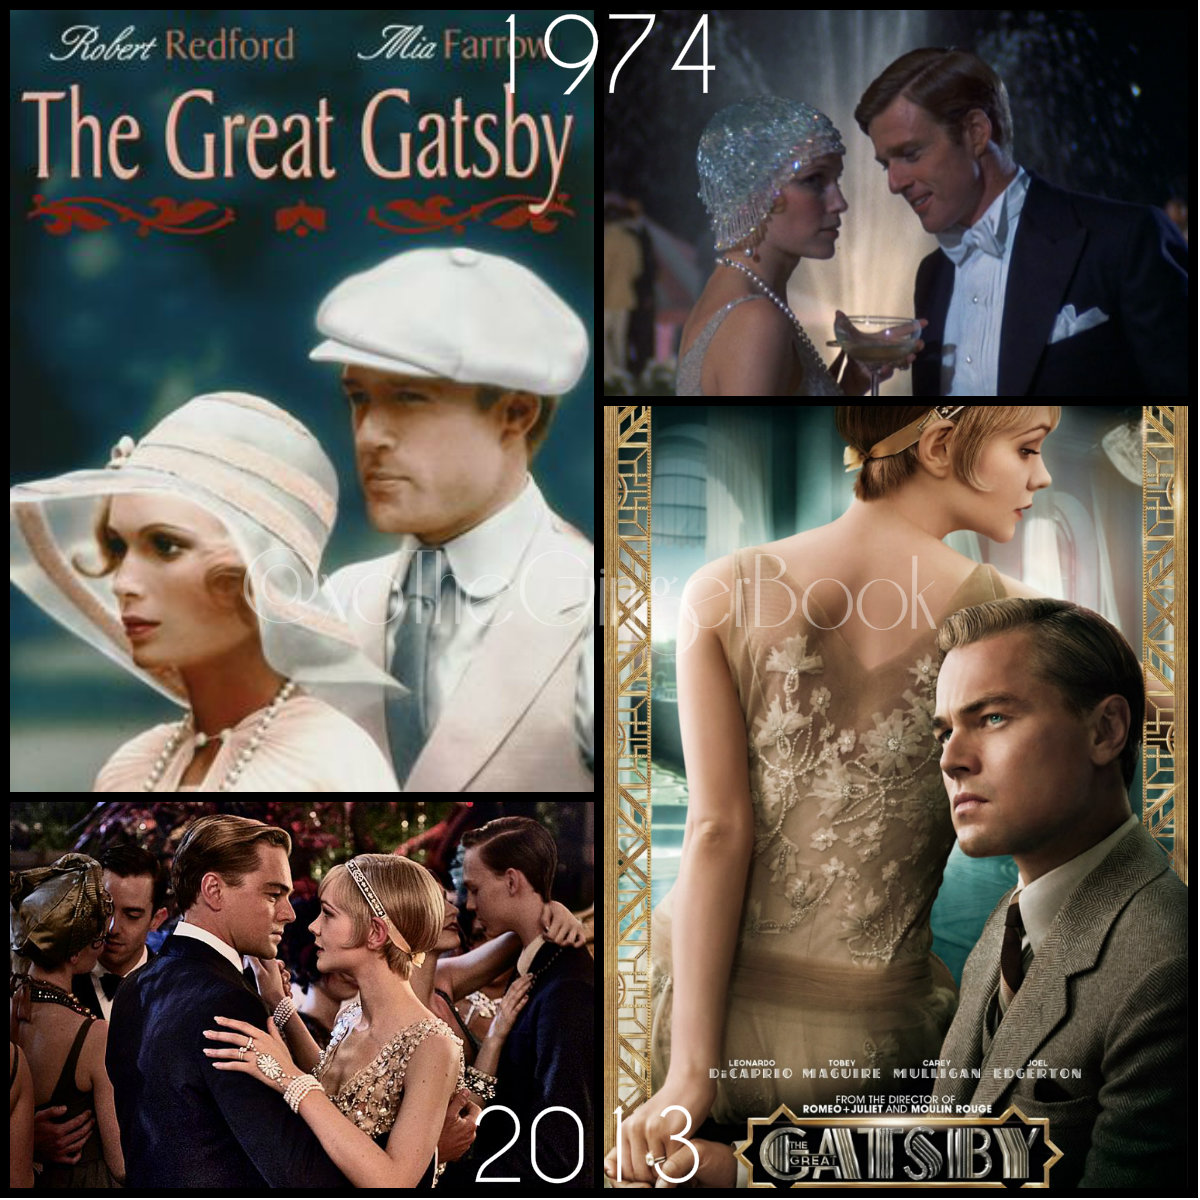 The Great Gatsby: And I Flirt A Little